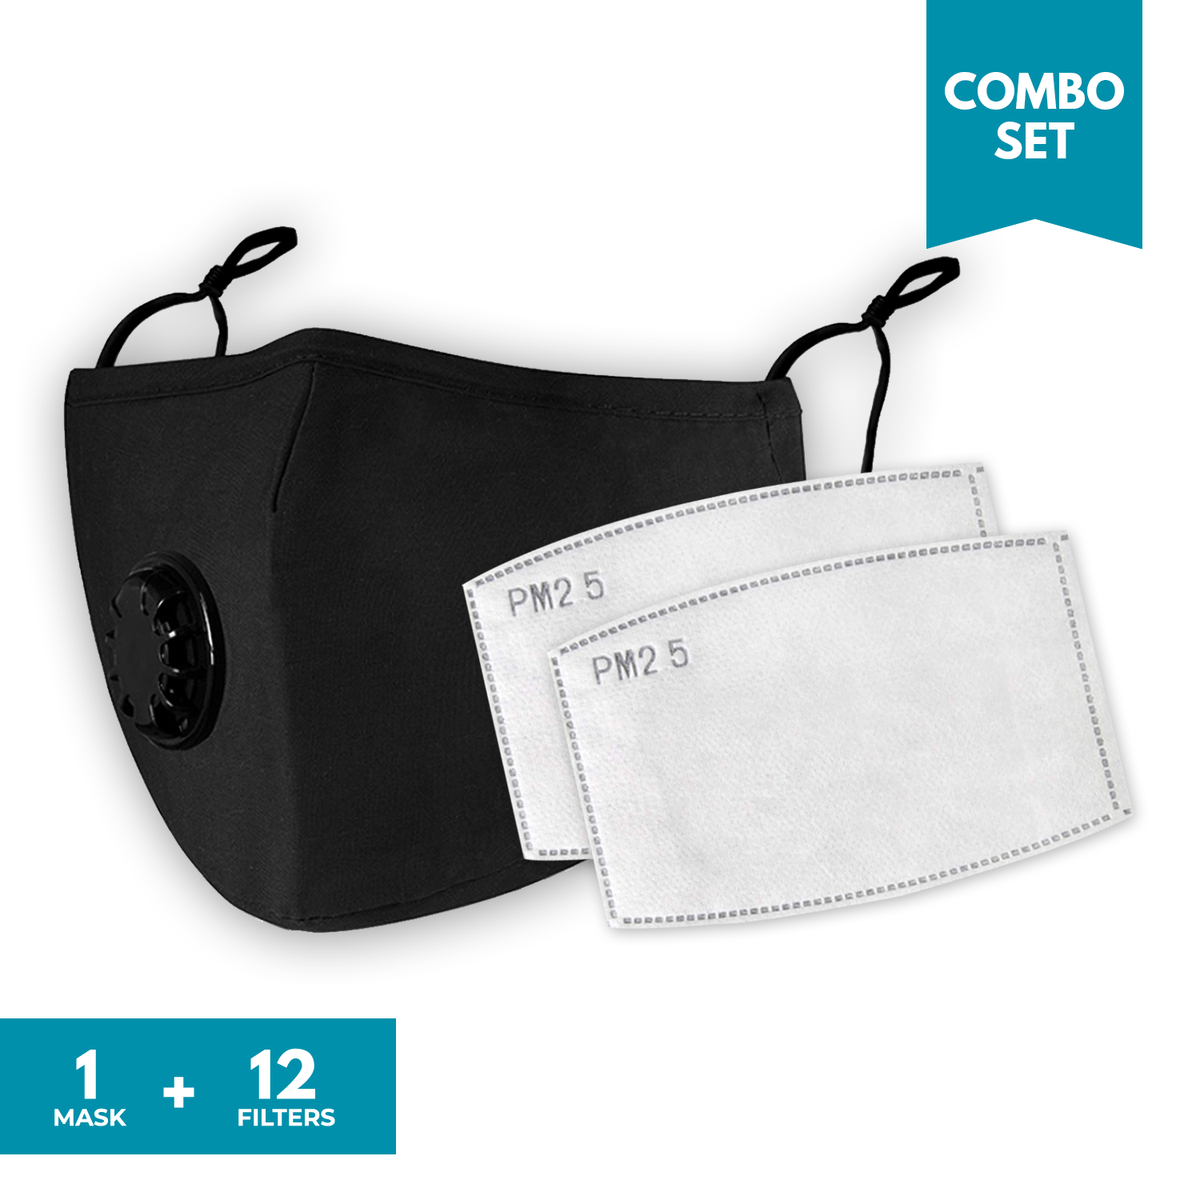 Combo Set - 25%+25% OFF | Airnex Face Mask + Activated Carbon Filters PM2.5 Set